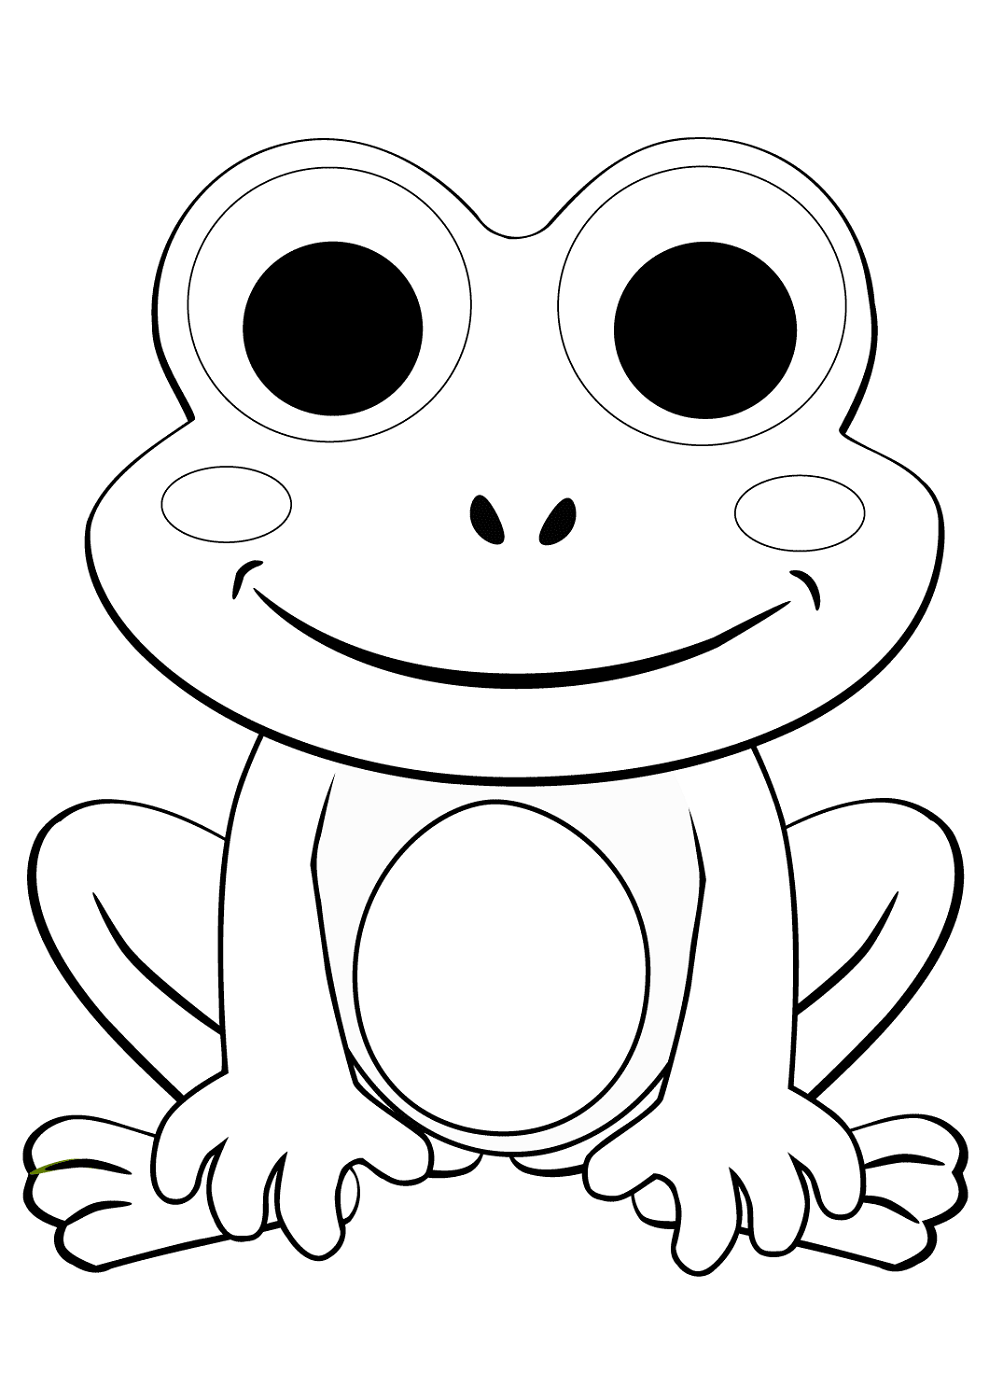 Frog Coloring Pages Frog Coloring Pages Cartoon Coloring Pages Cute Coloring Pages